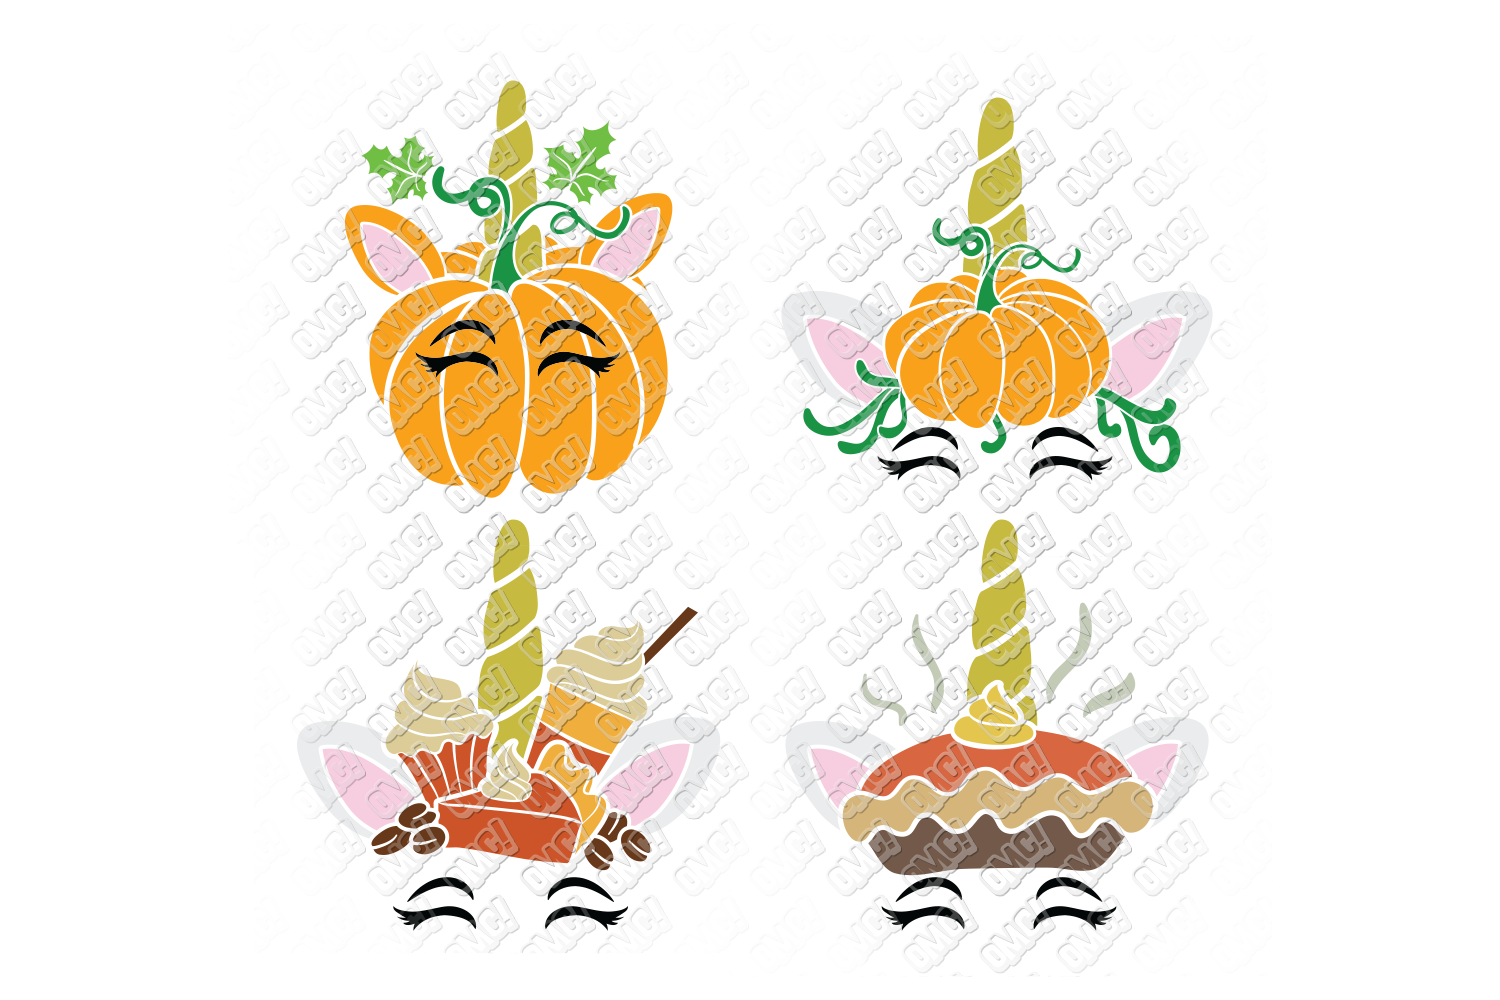 Unicorn Thanksgiving SVG Pumpkin in SVG, DXF, PNG, EPS, JPEG example image 3